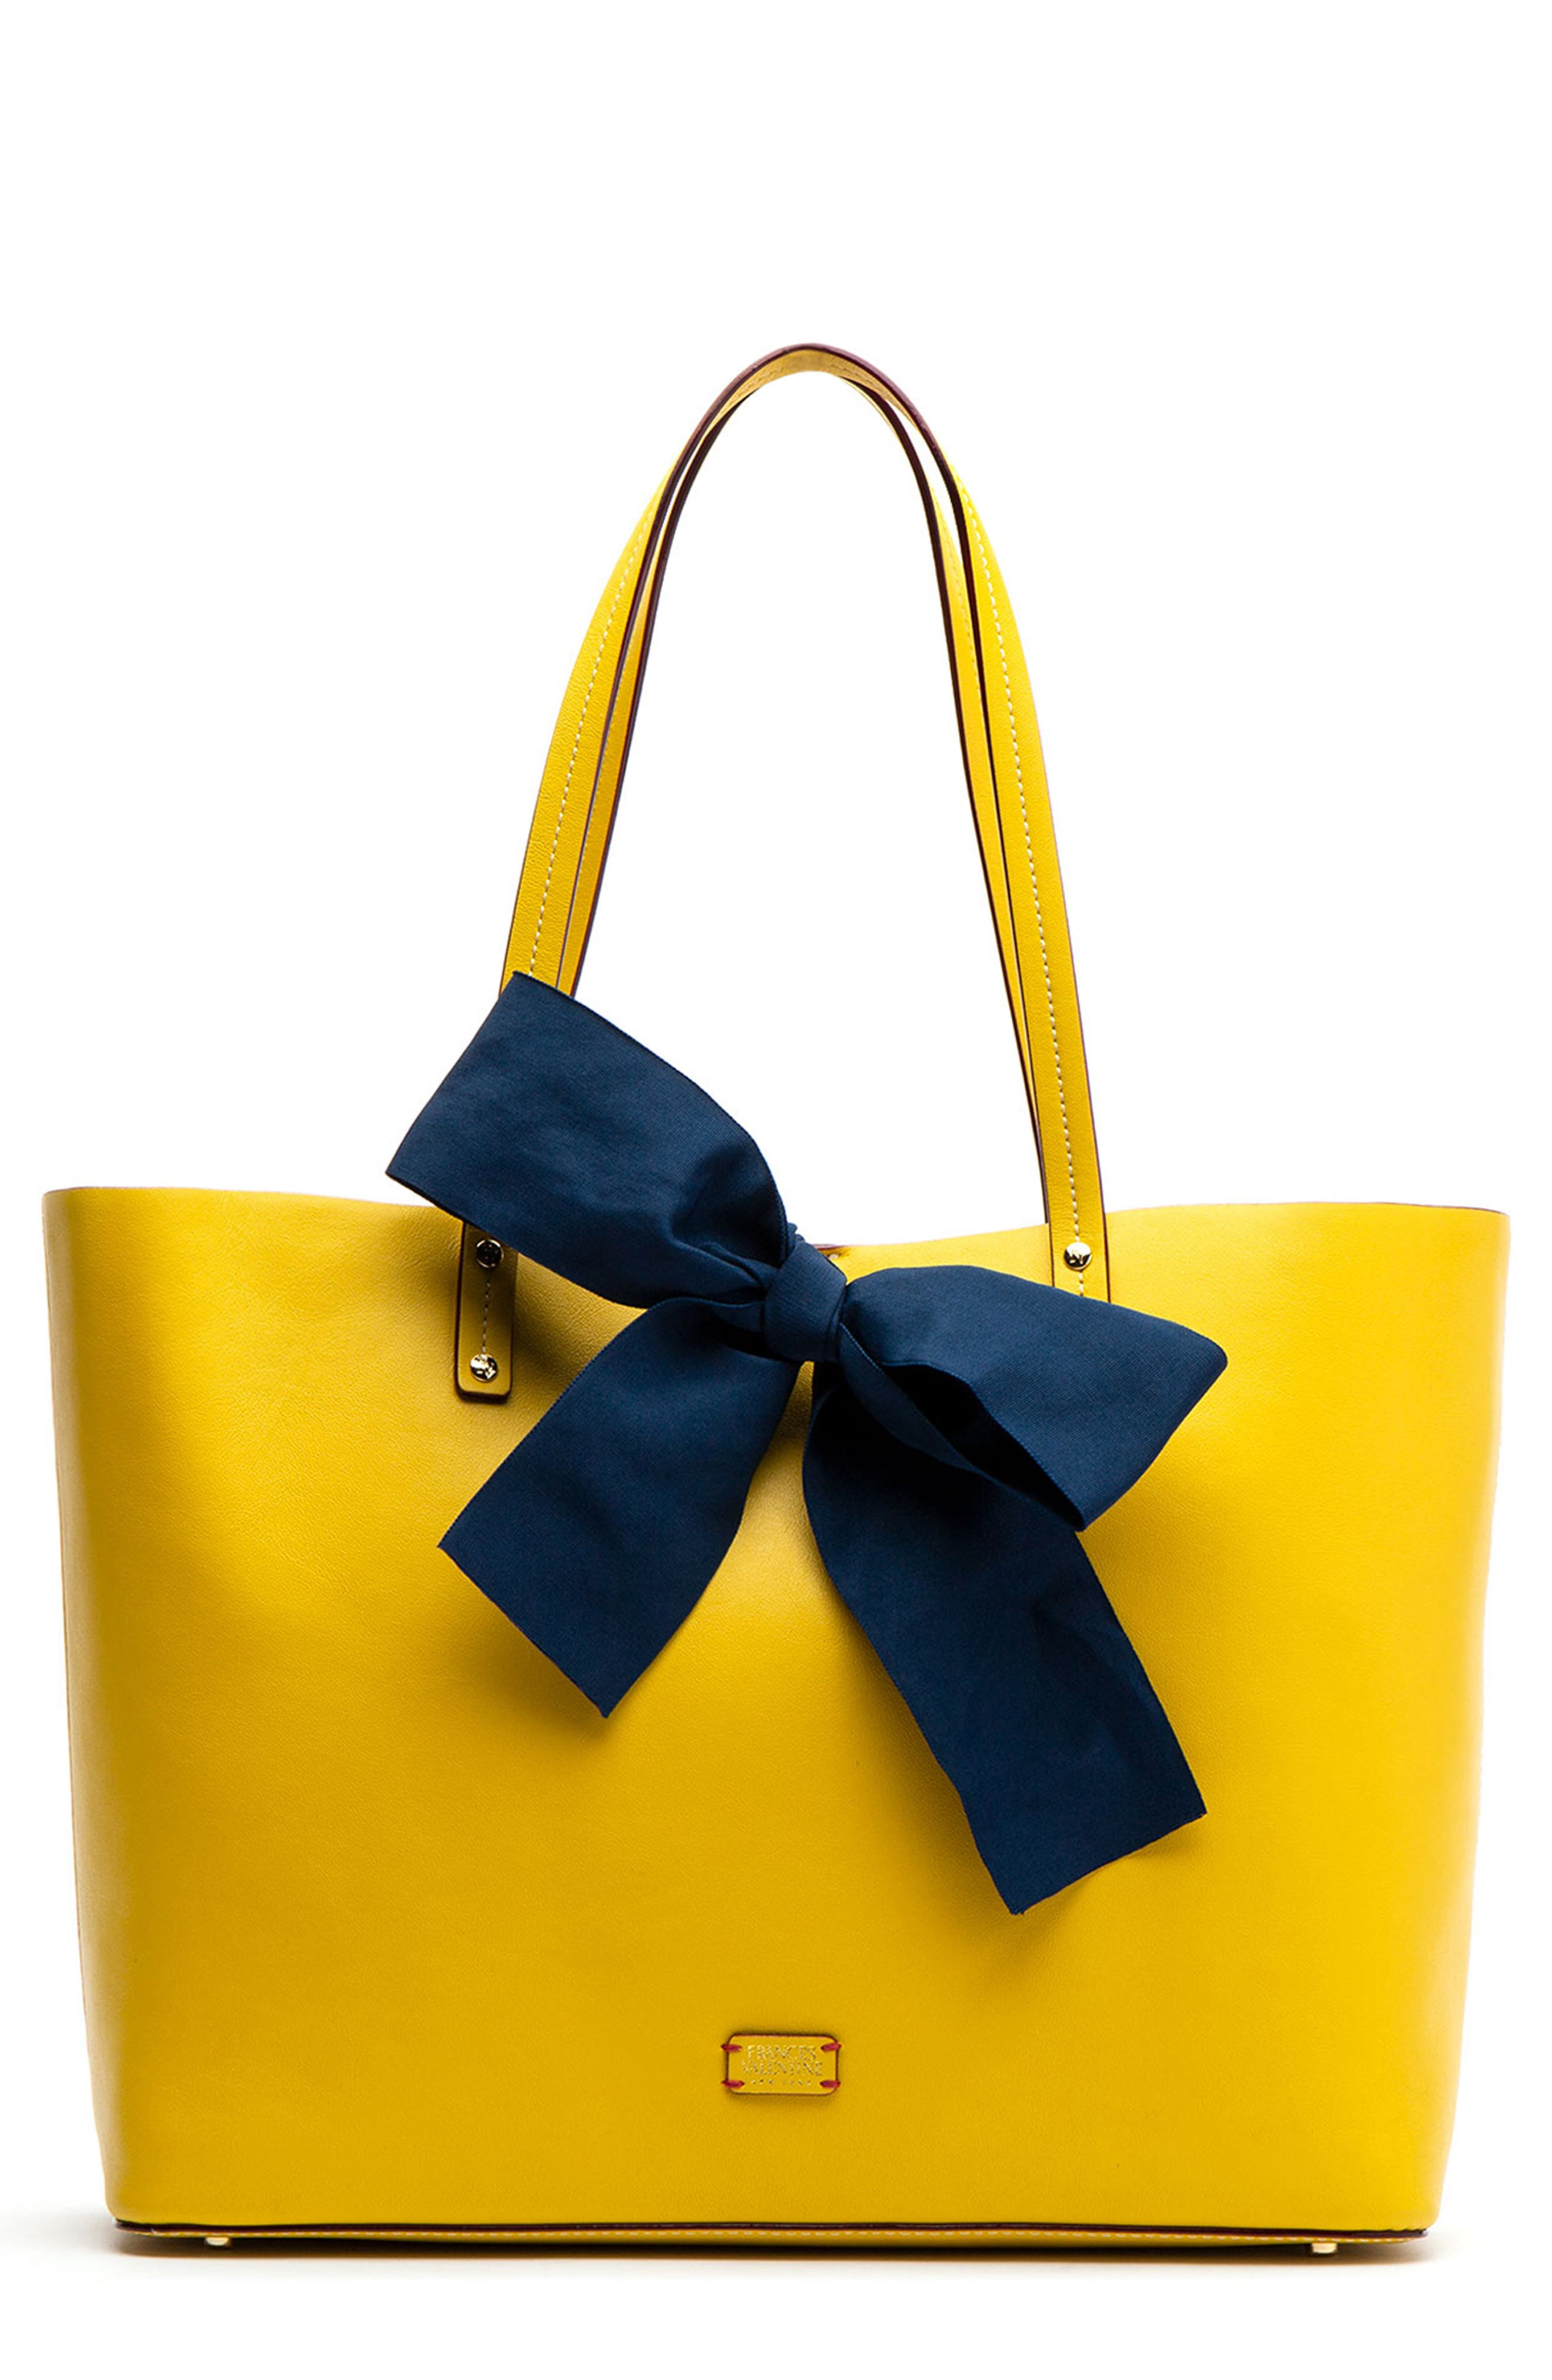 FRANCES VALENTINE Trixie Leather Tote in Yellow/ Navy